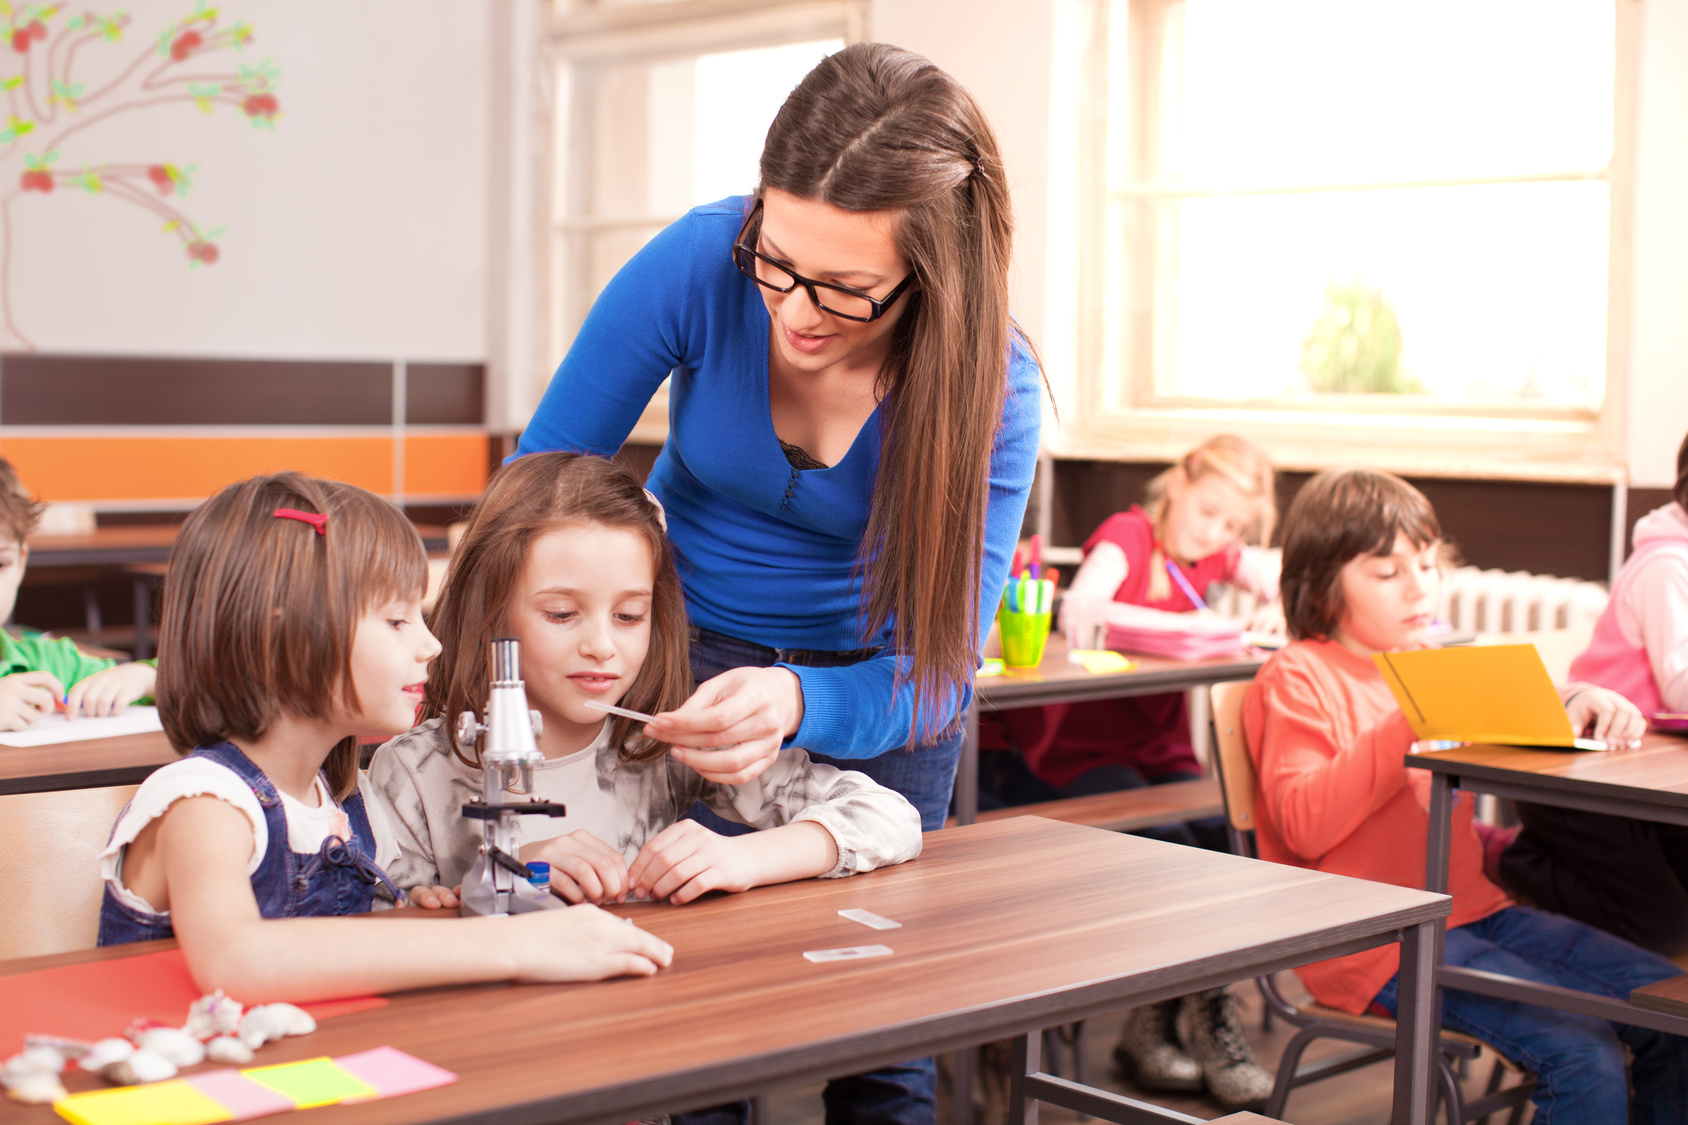 in order to work with your students, you must learn how to manage the classroom